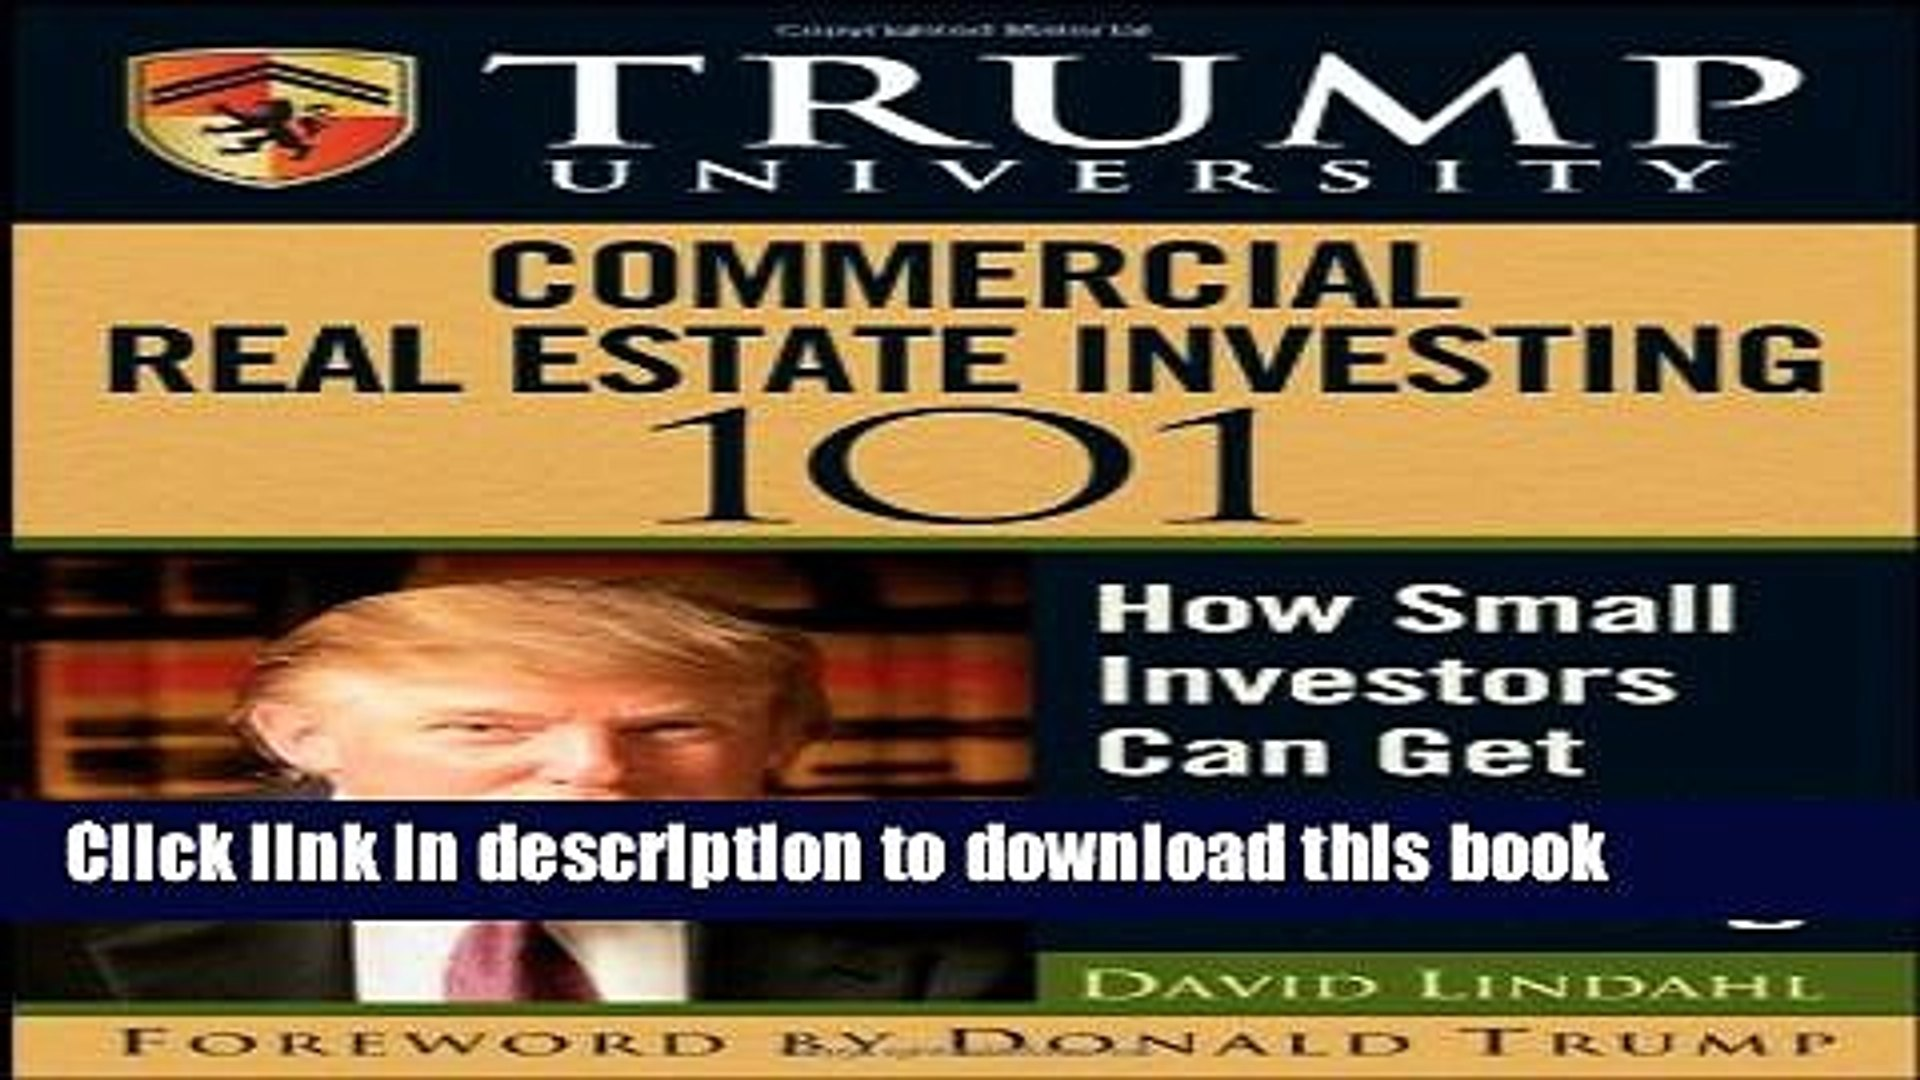 Download Trump University Commercial Real Estate 101: How Small Investors Can Get Started and Make